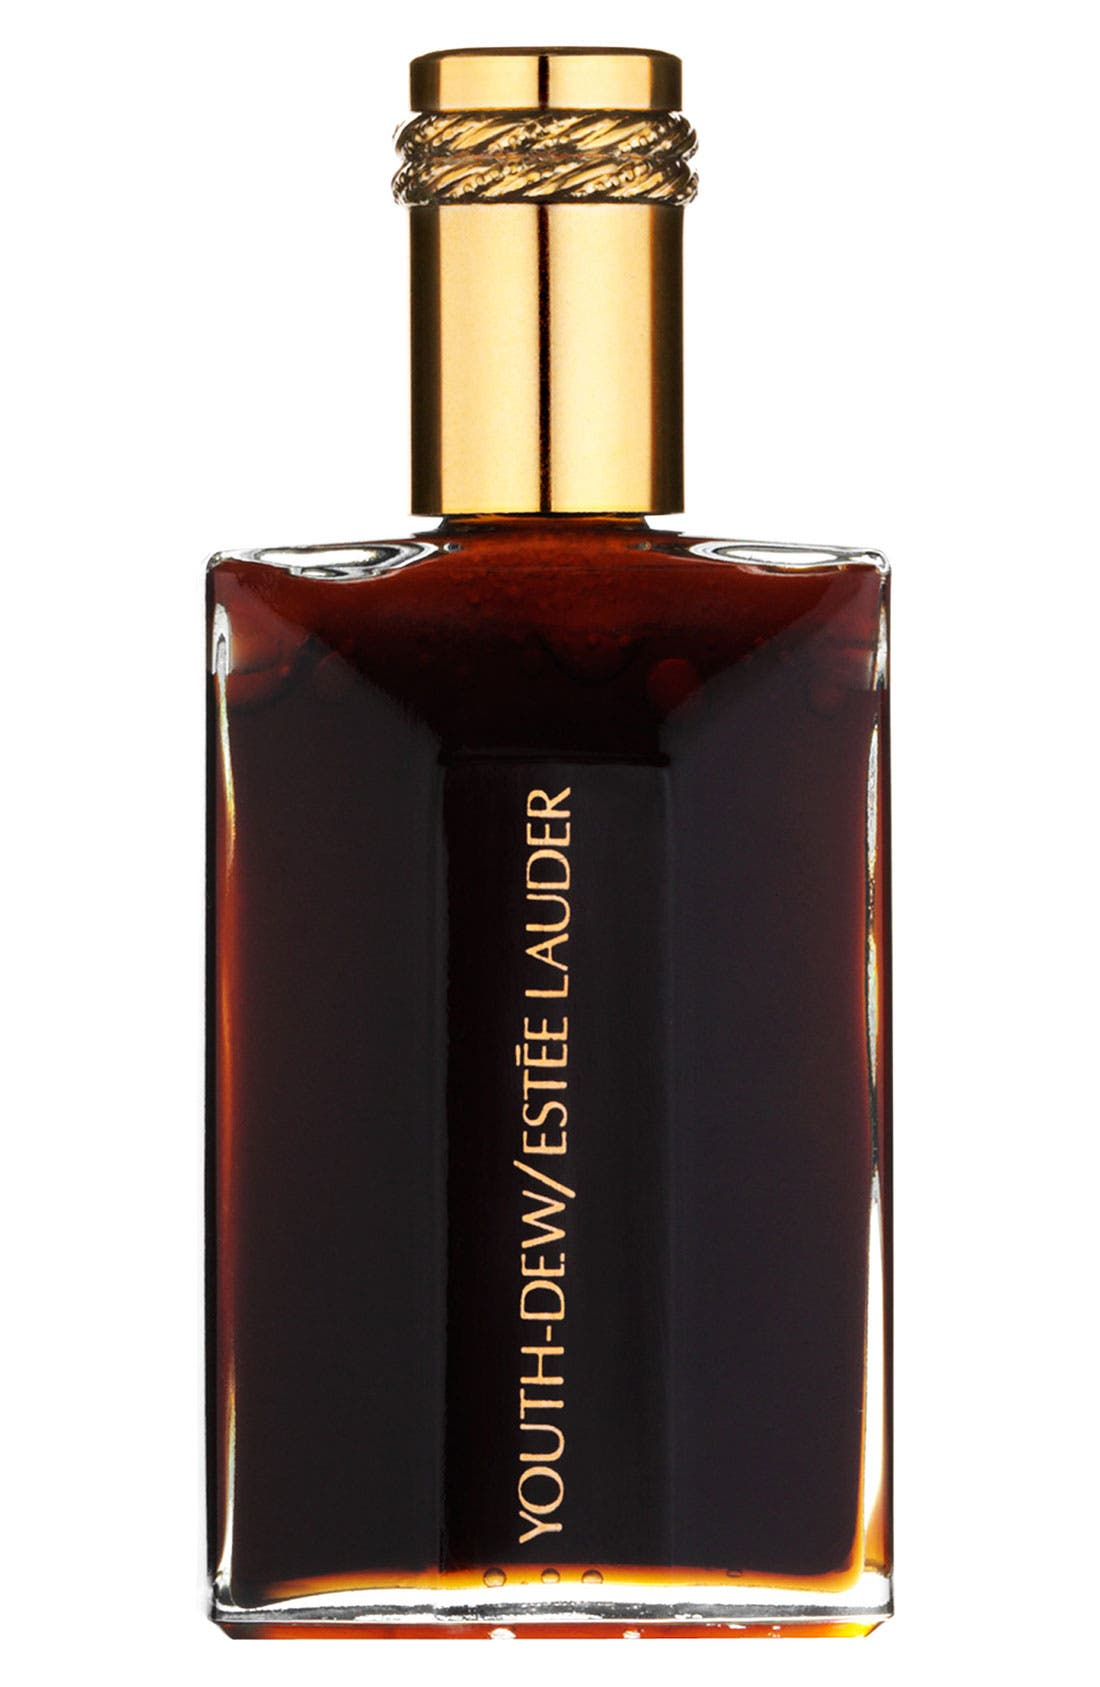 ESTÉE LAUDER, Youth-Dew Bath Oil, Main thumbnail 1, color, 000